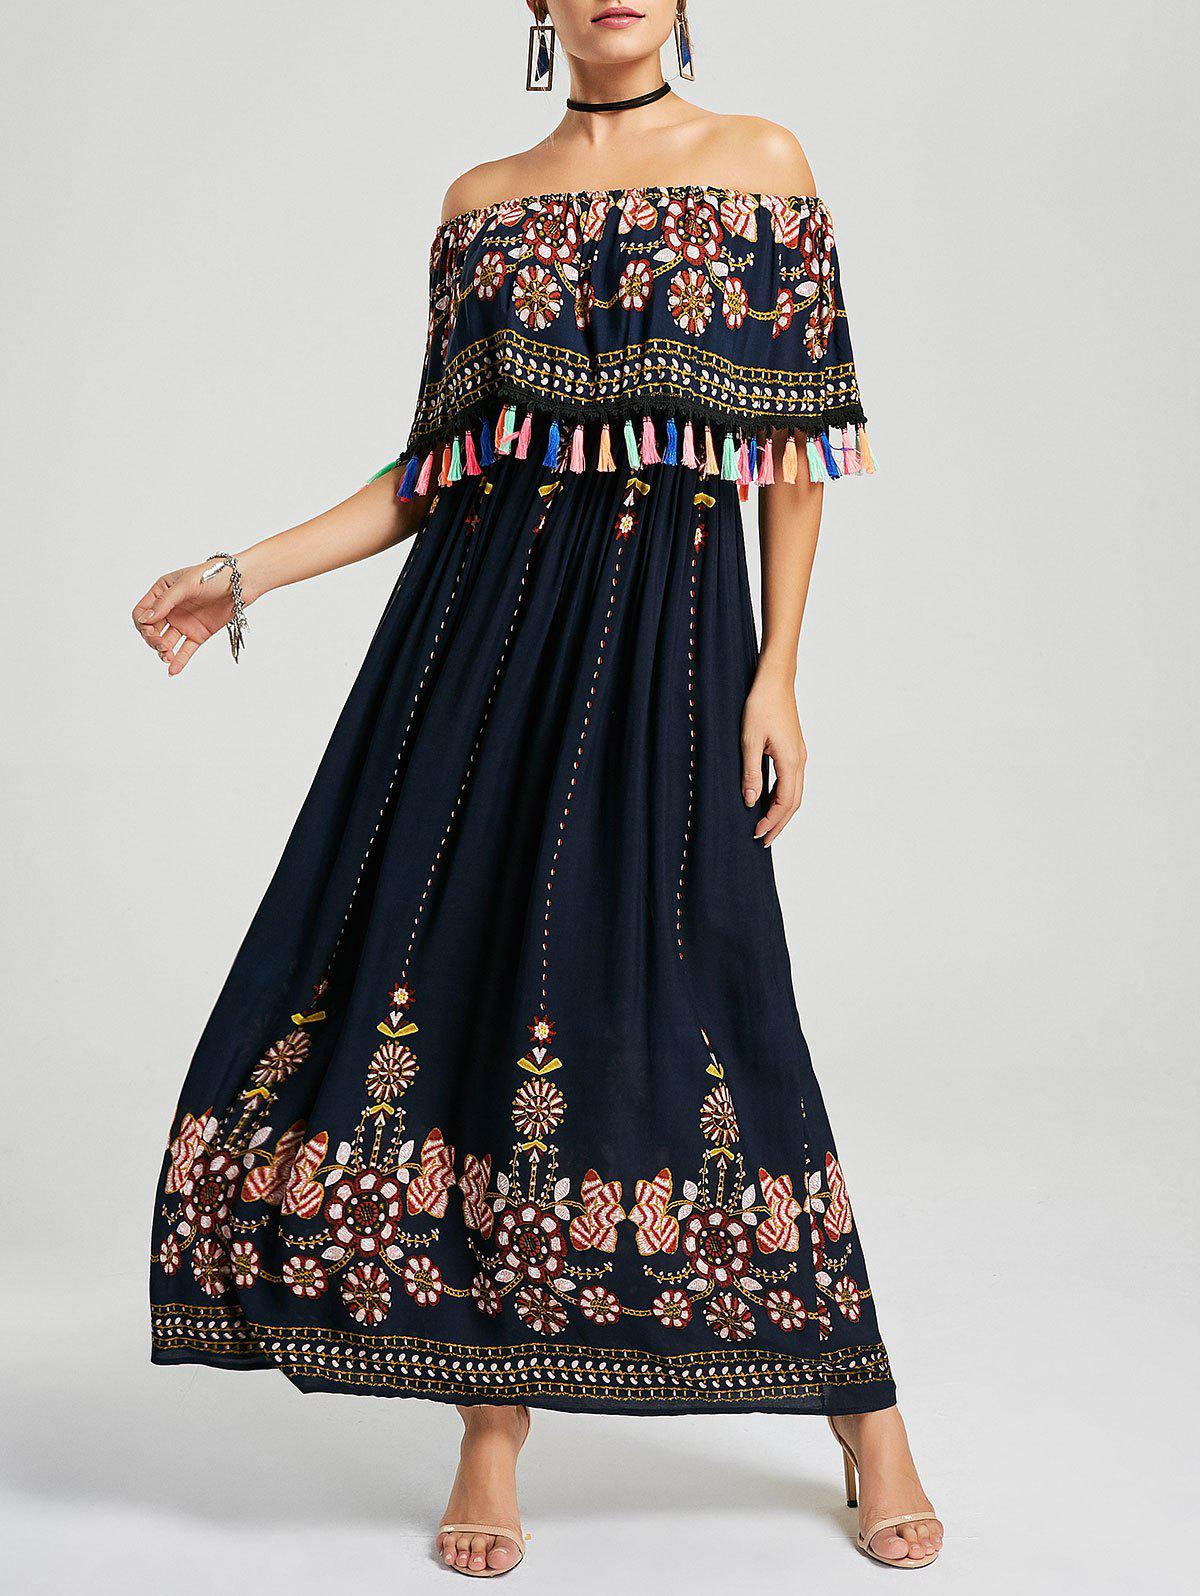 Tassel Off The Shoulder Boho Maxi Dress - PURPLISH BLUE L